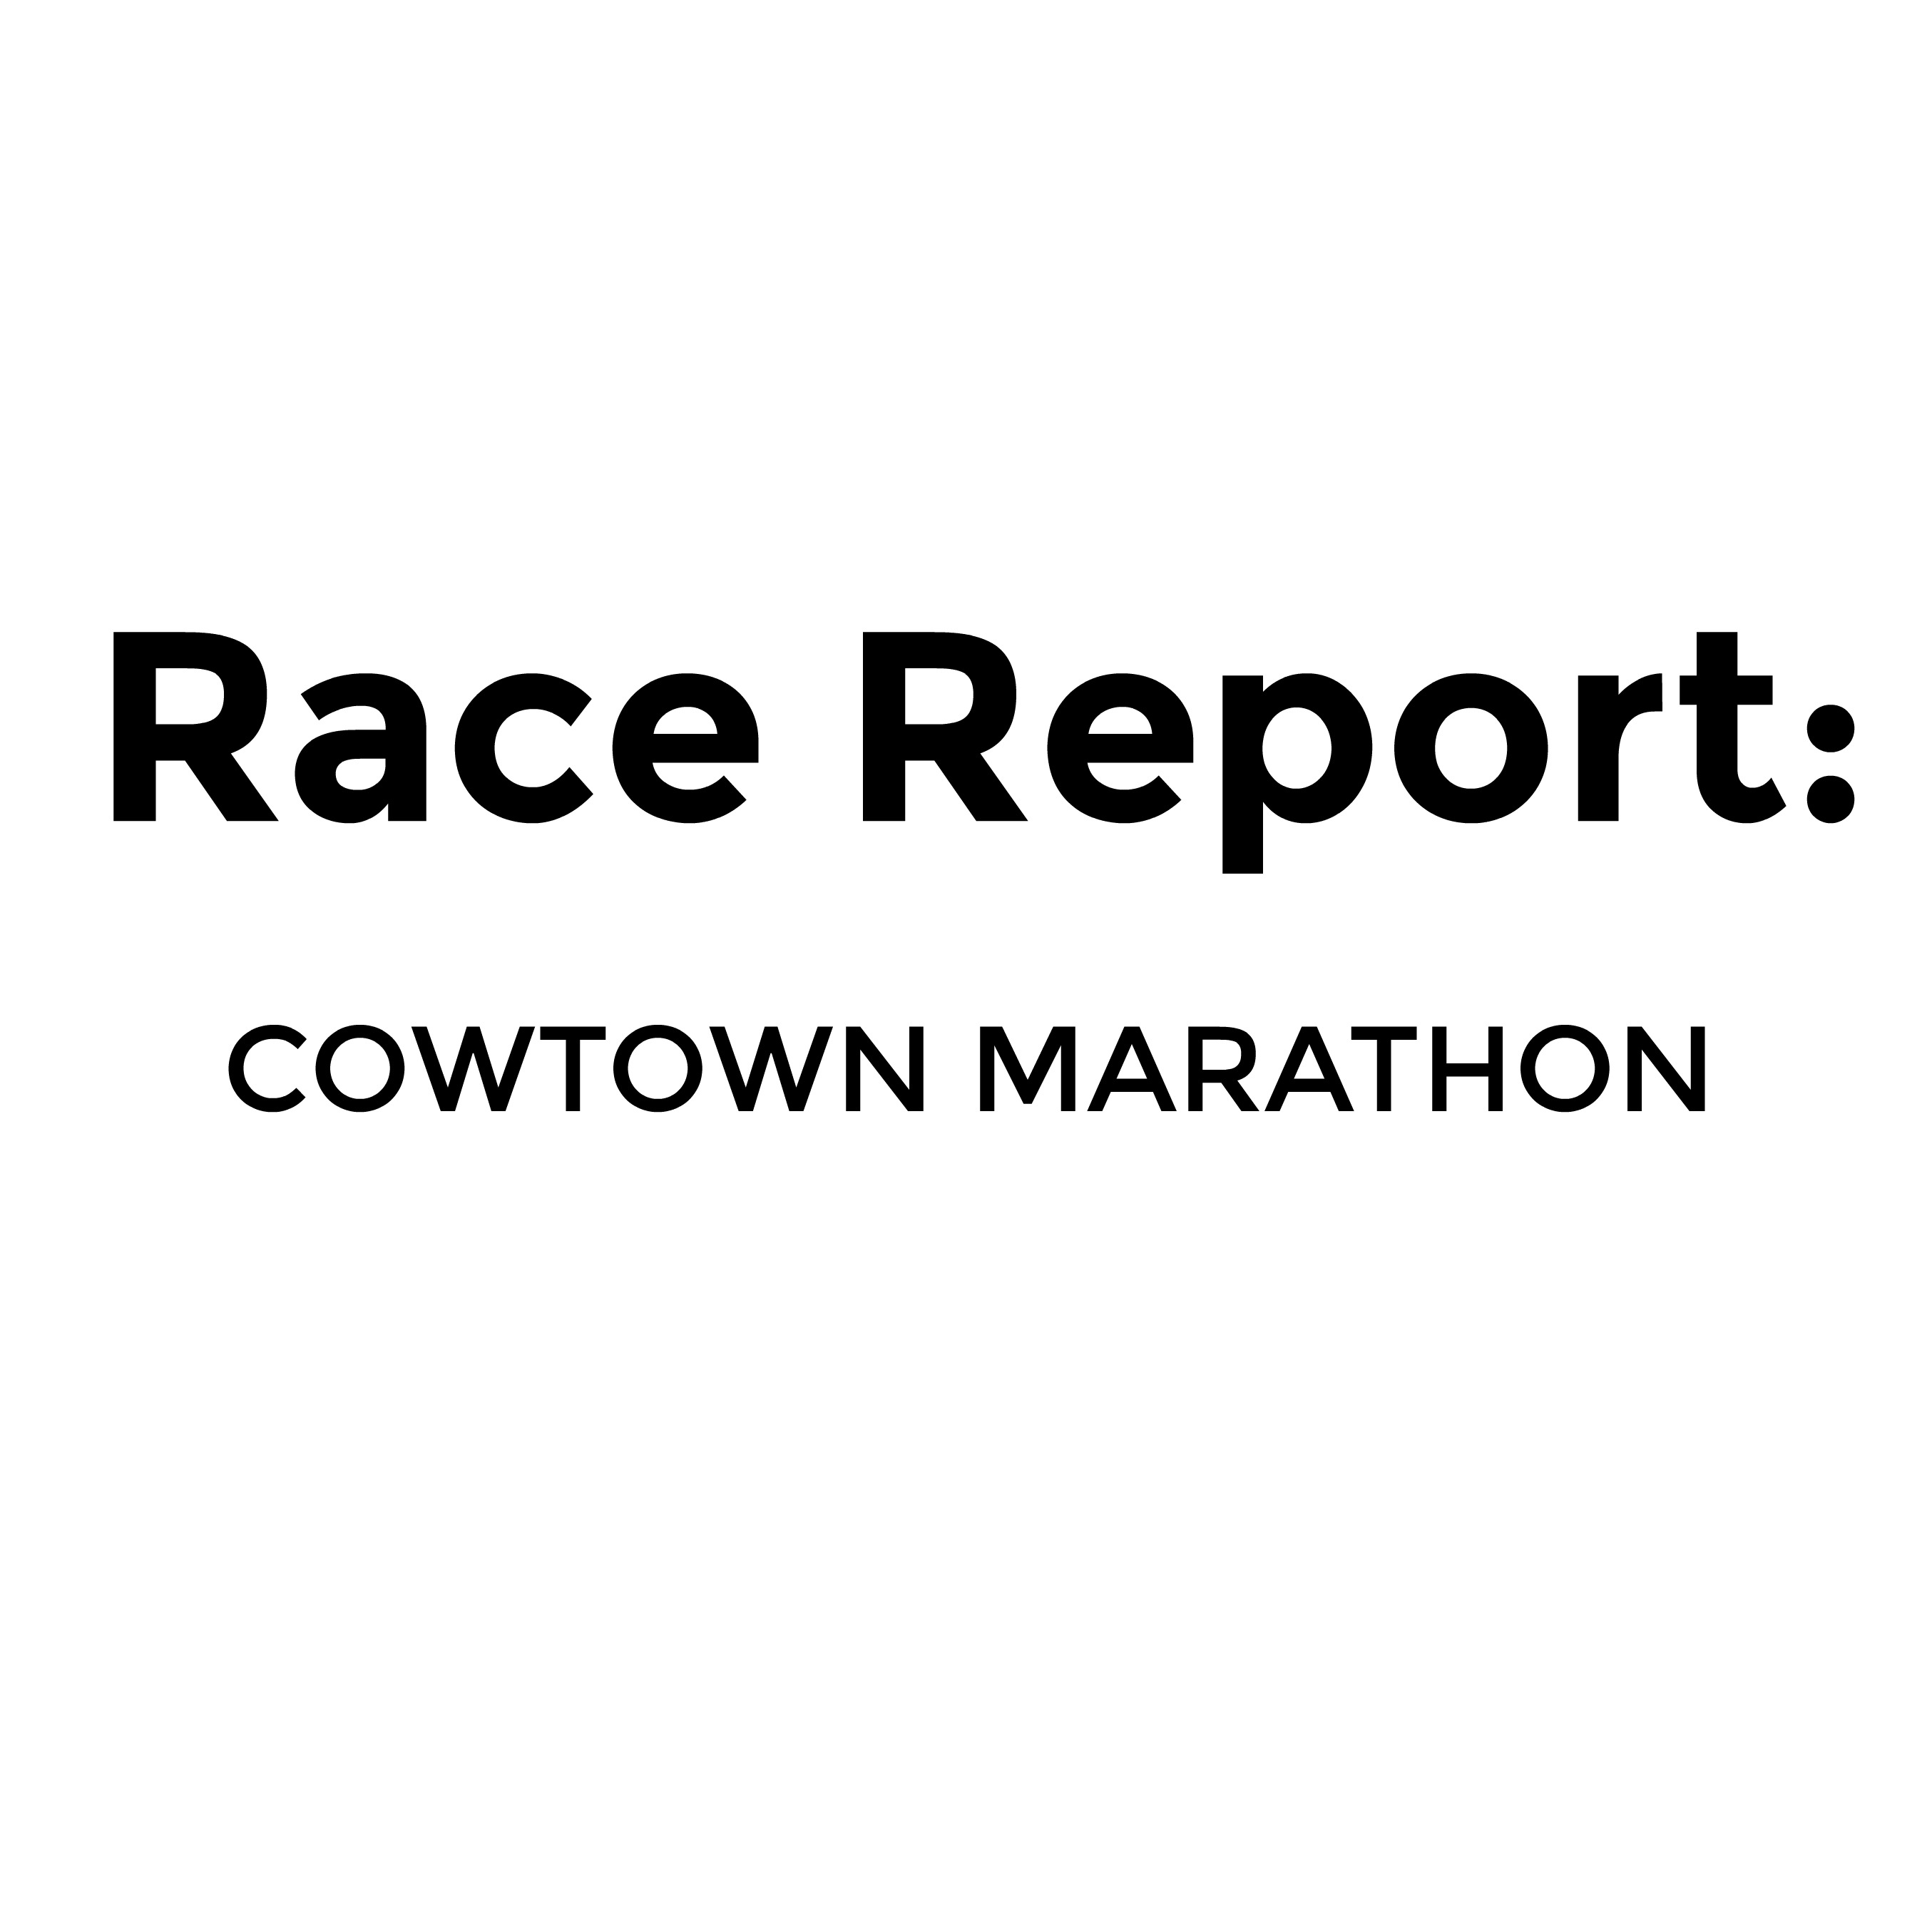 Cowtown Marathon Race Report